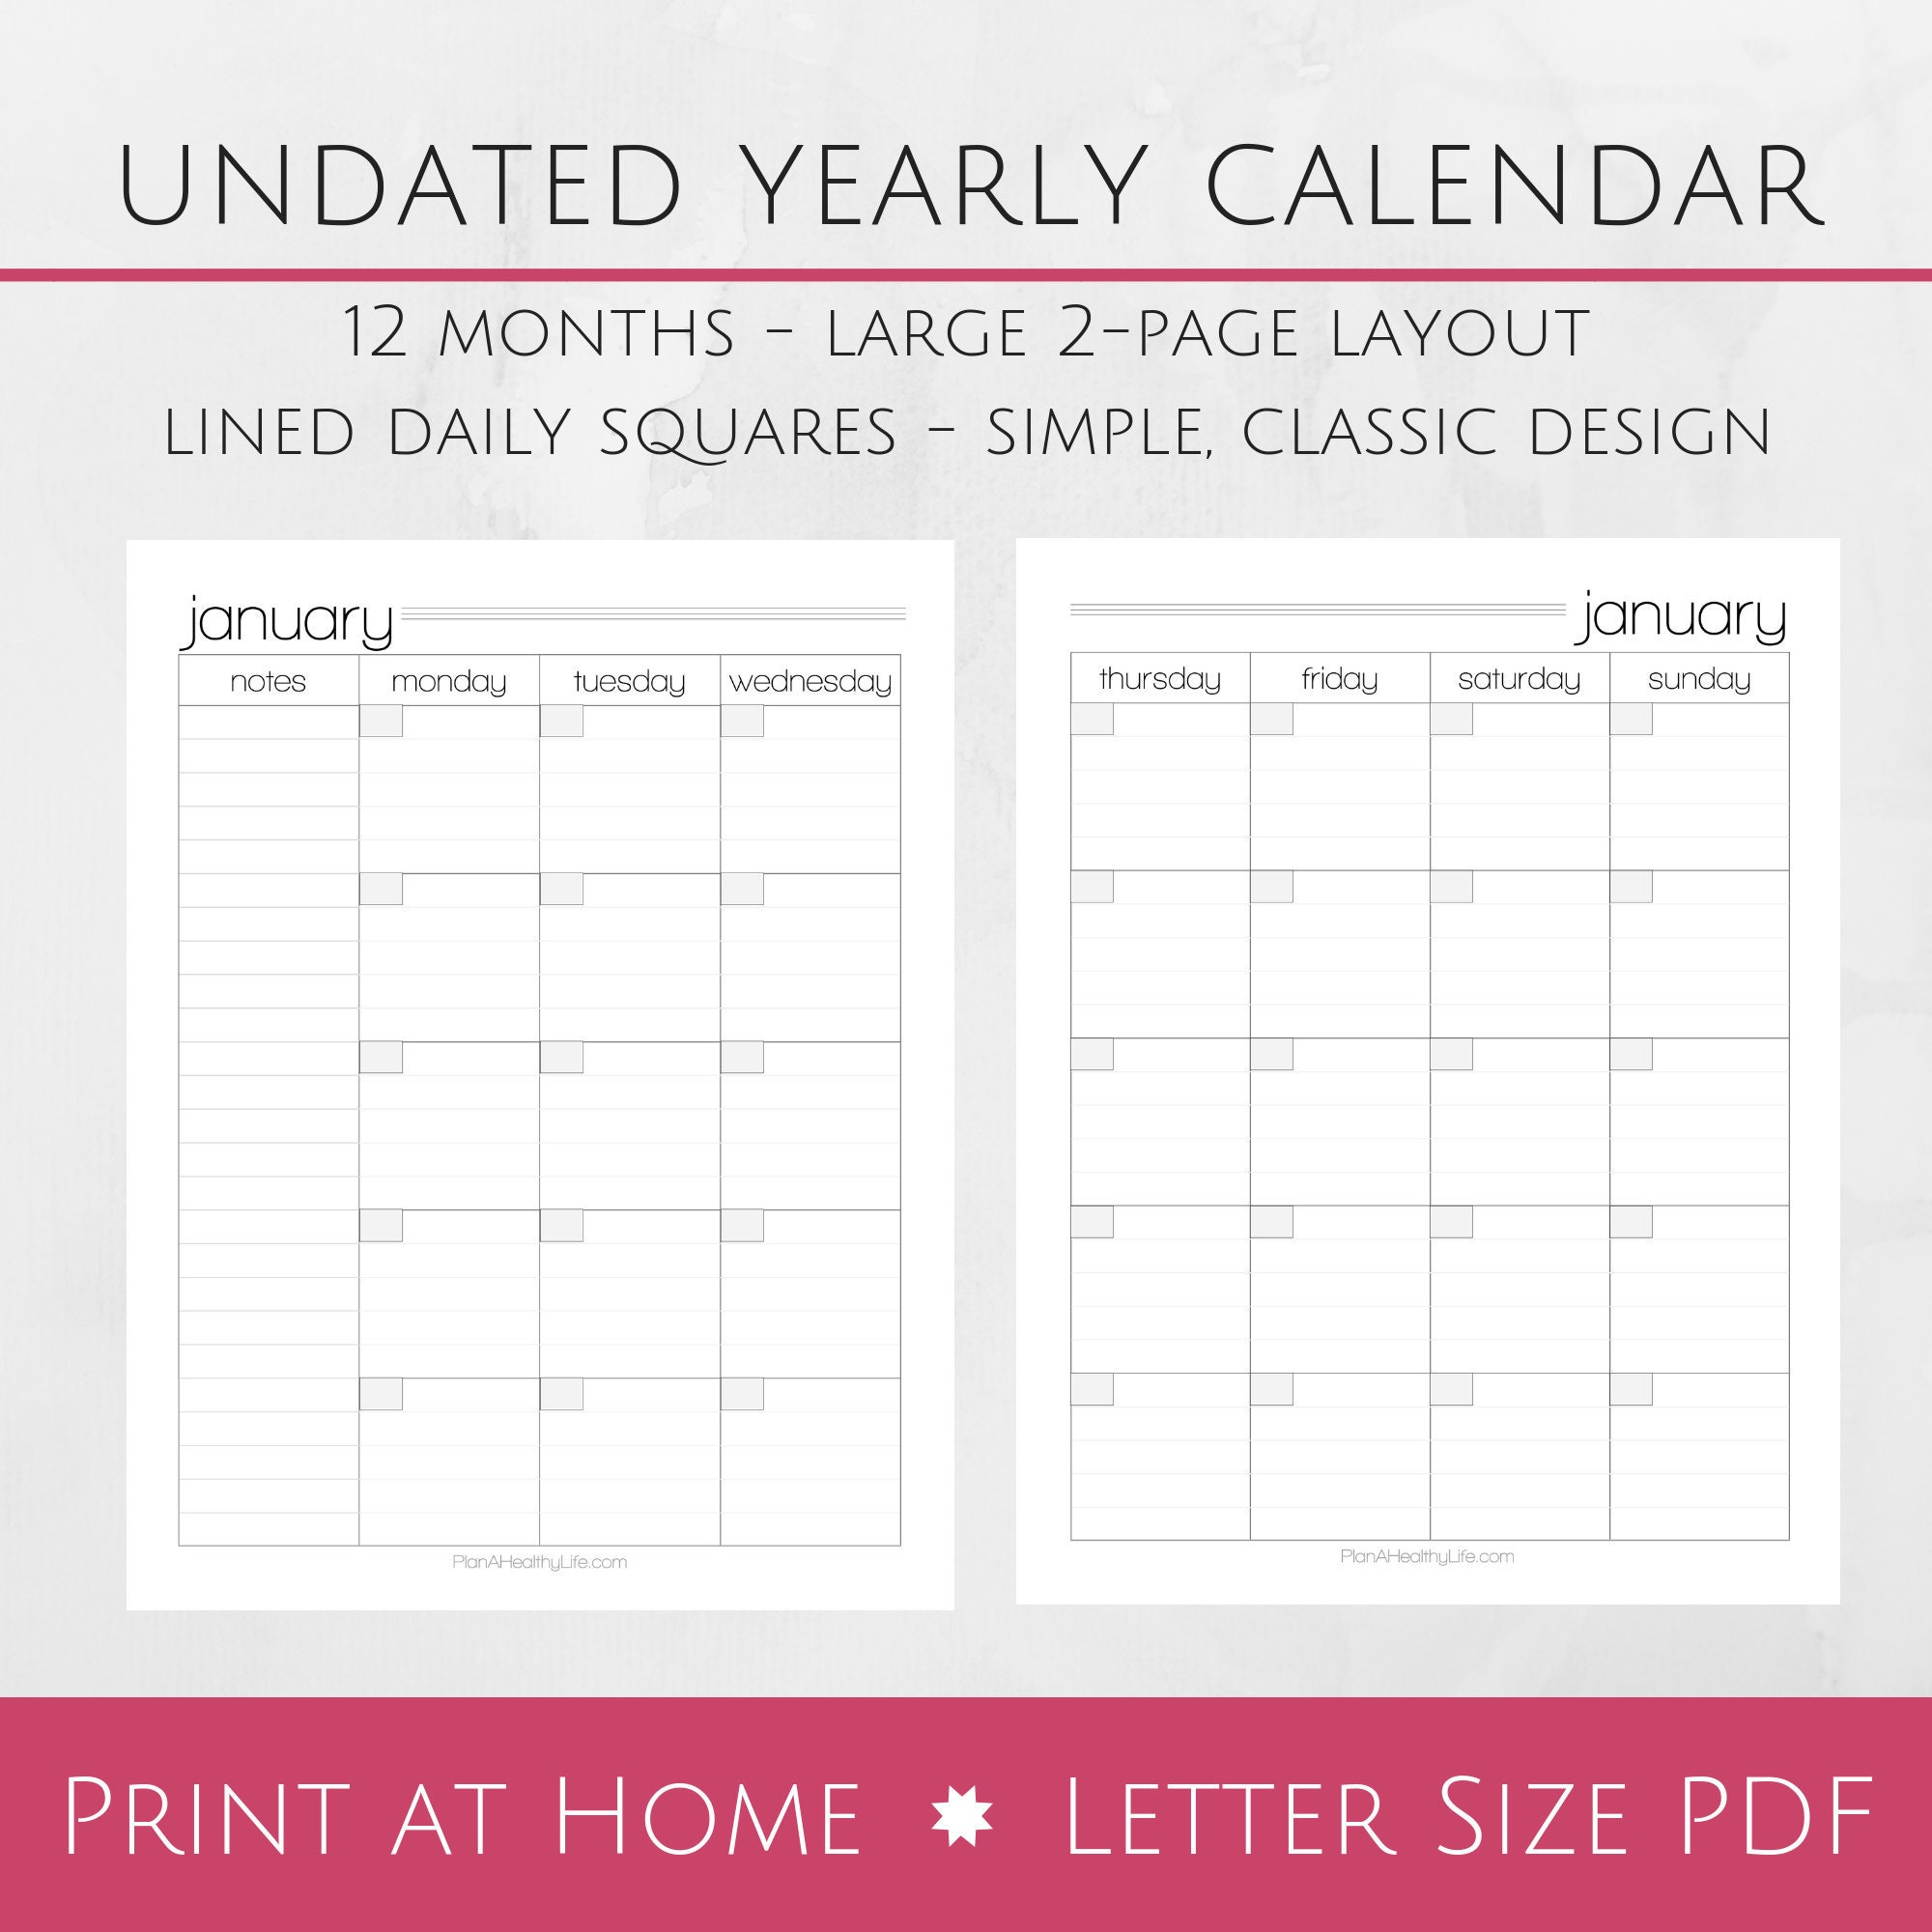 Printable Monthly Undated Calendar 8.5x11 Letter Size PDF